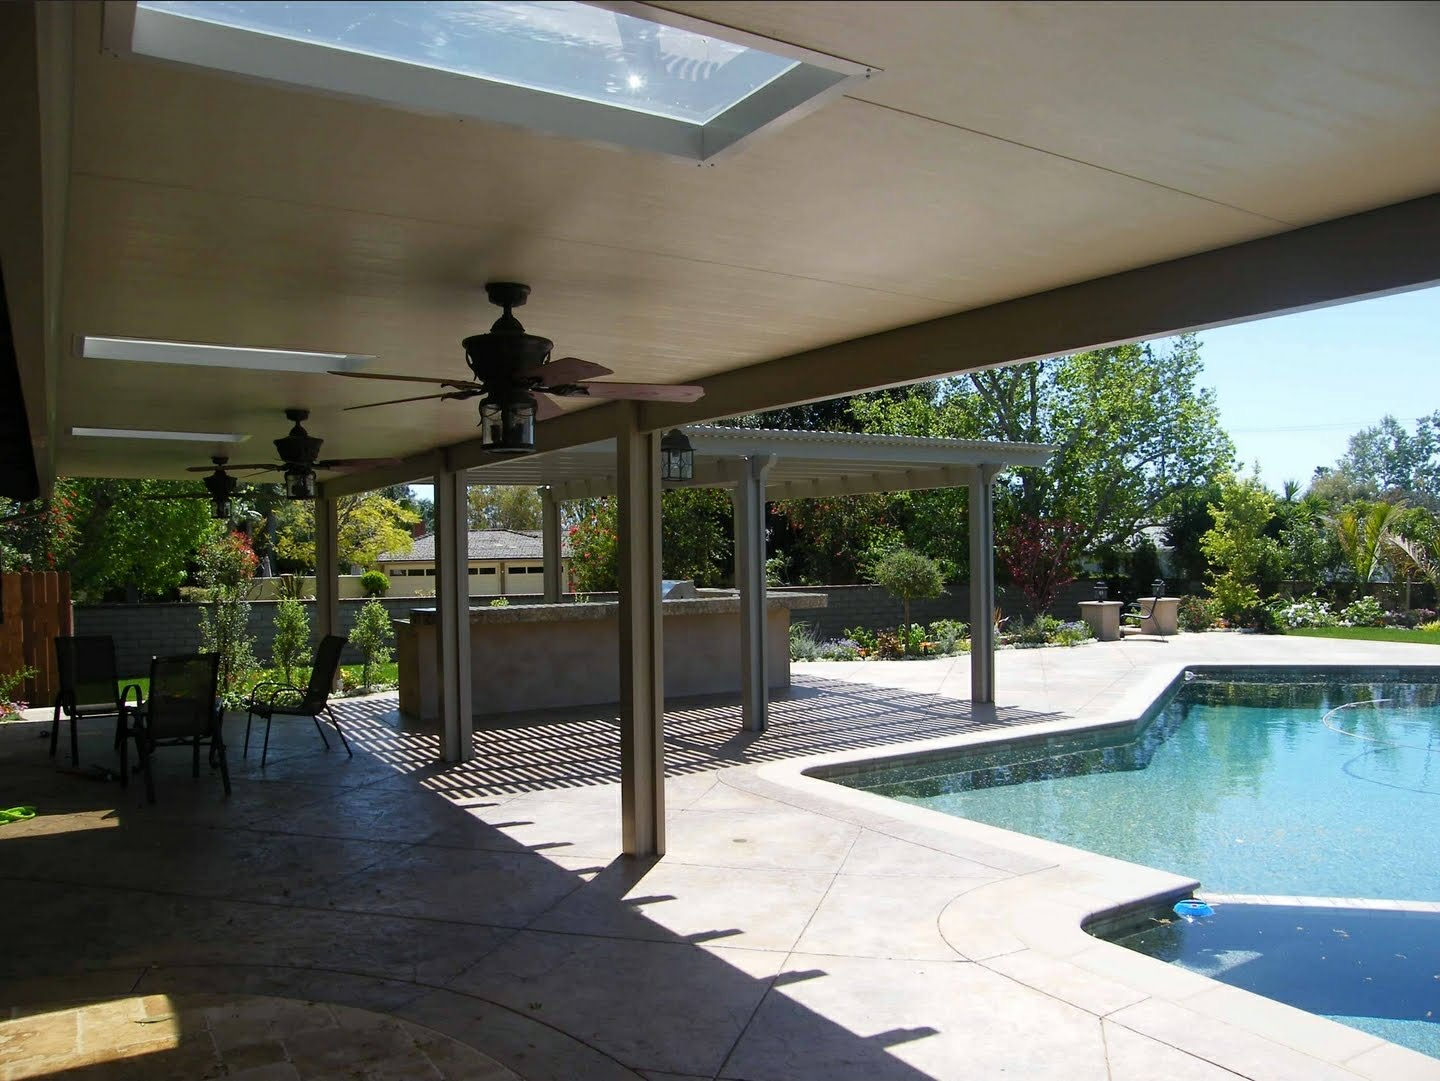 Sandstone Patio Cover Awning Houston with skylights